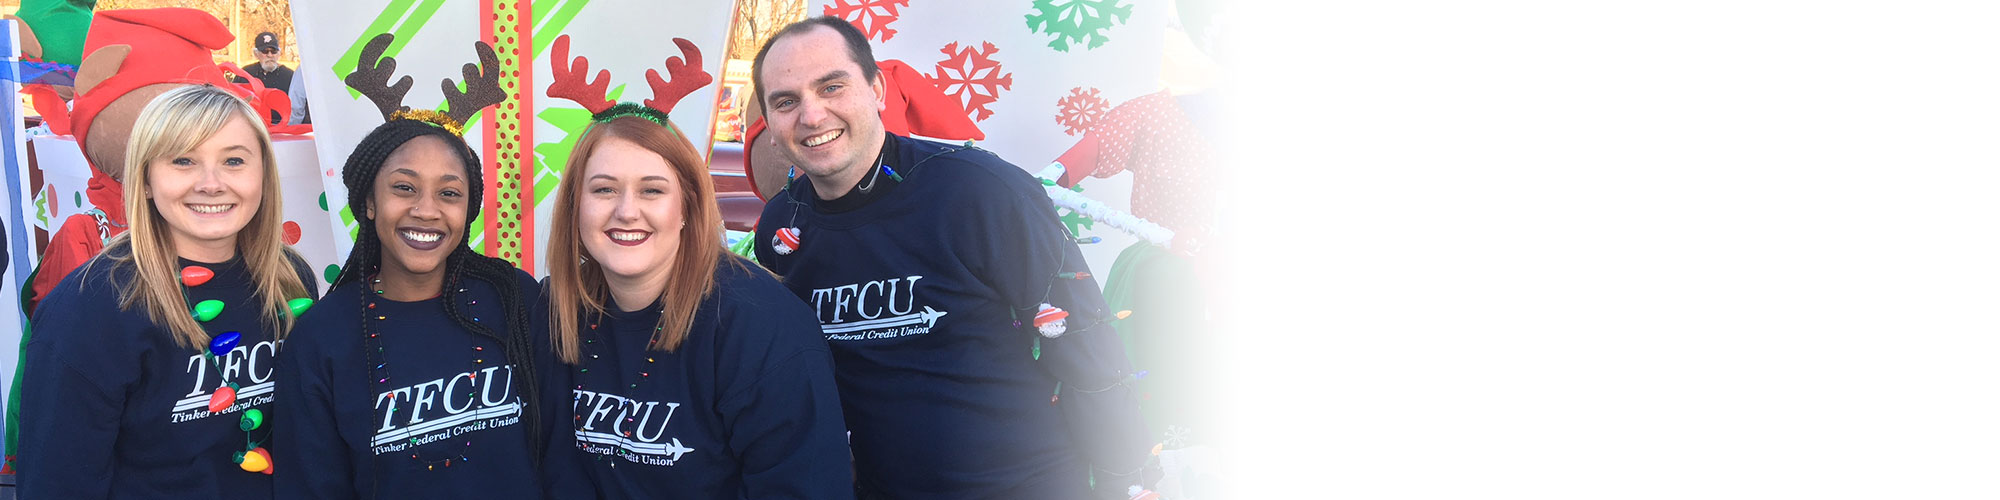 TFCU Employees having fun at an event